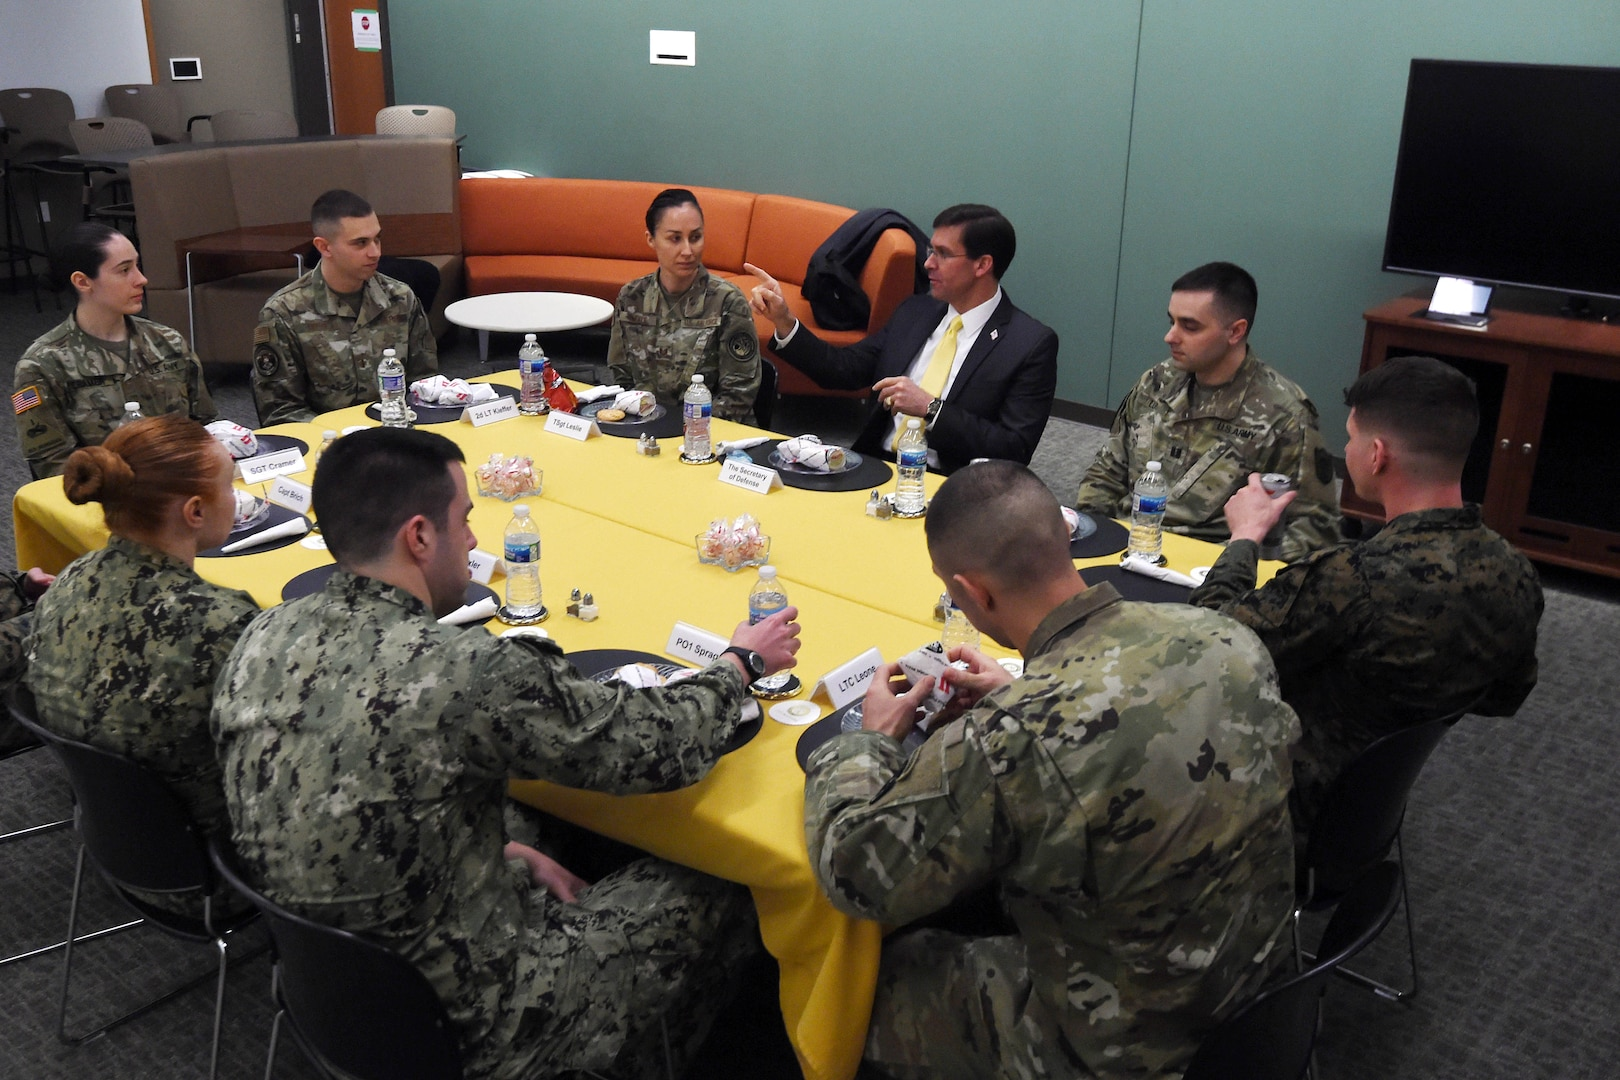 Secretary of Defense Dr. Mark T. Esper eats lunch with U.S. Strategic Command's (USSTRATCOM) junior officers and noncommissioned officers at the U.S. Strategic Command (USSTRATCOM) Command and Control Facility at Offutt Air Force Base, Neb., Feb. 20, 2020.  During his visit, Esper toured the command's global operations center and participated in discussions with senior leaders and warfighters on strategic deterrence in the 21st century.